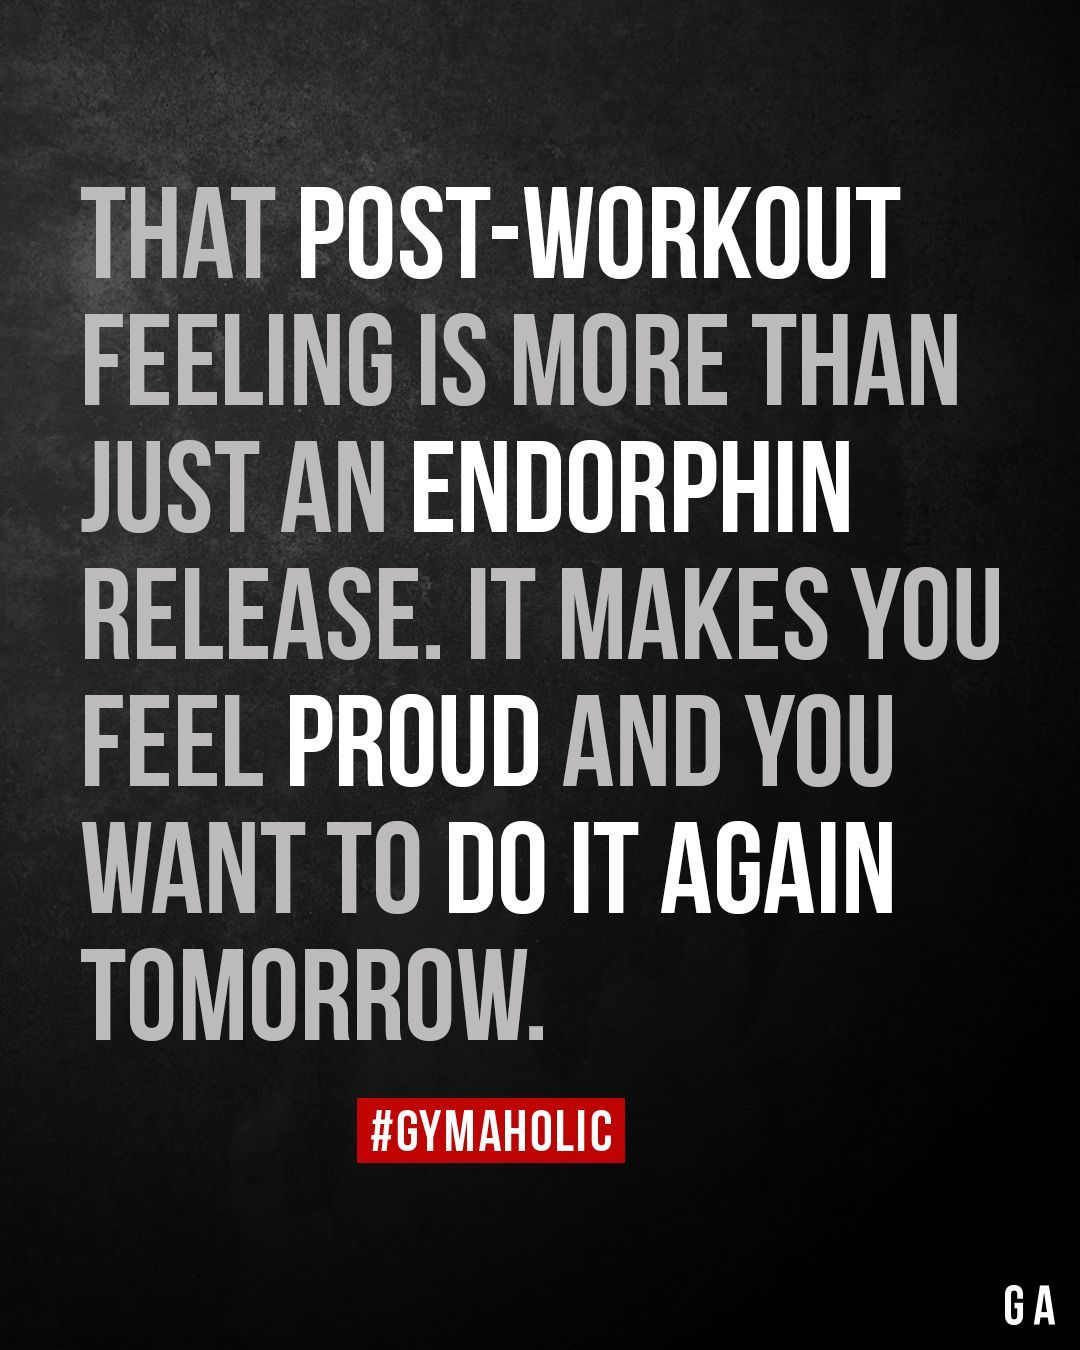 #endorphin #feeling #gym motivation #postworkout #Release That post-workout feeling is more than jus...